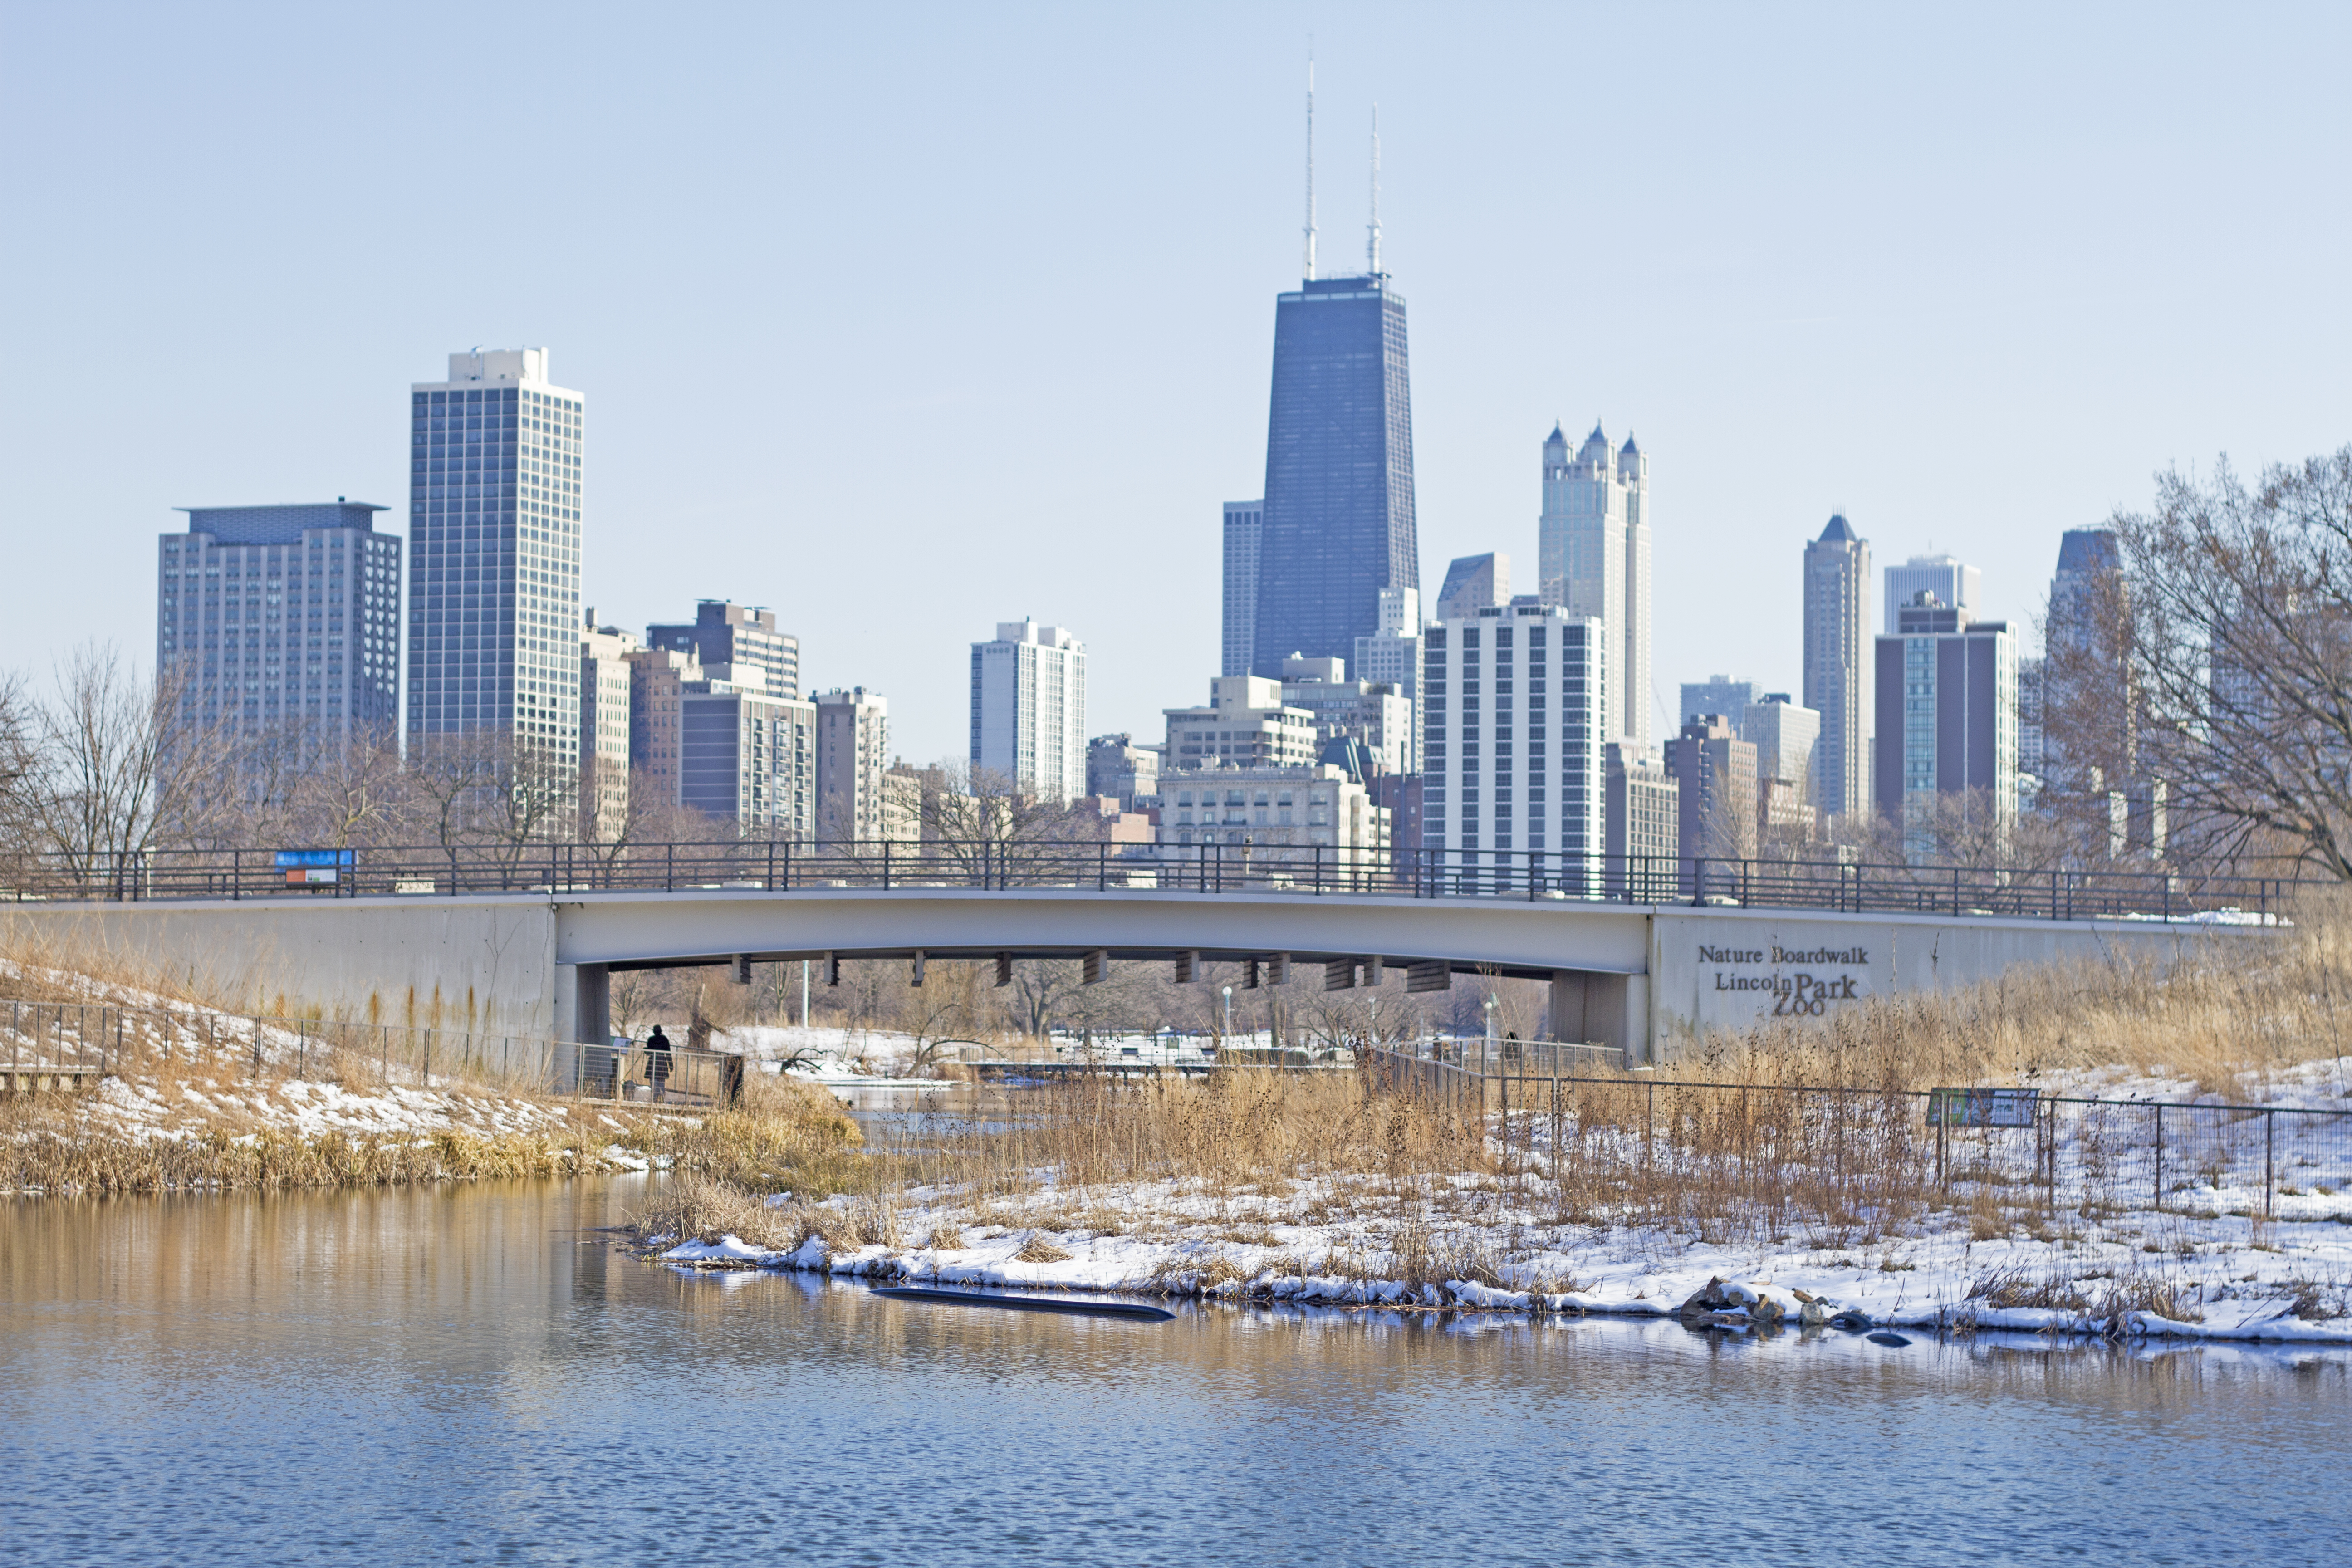 Skyline_LincolnParkZoo